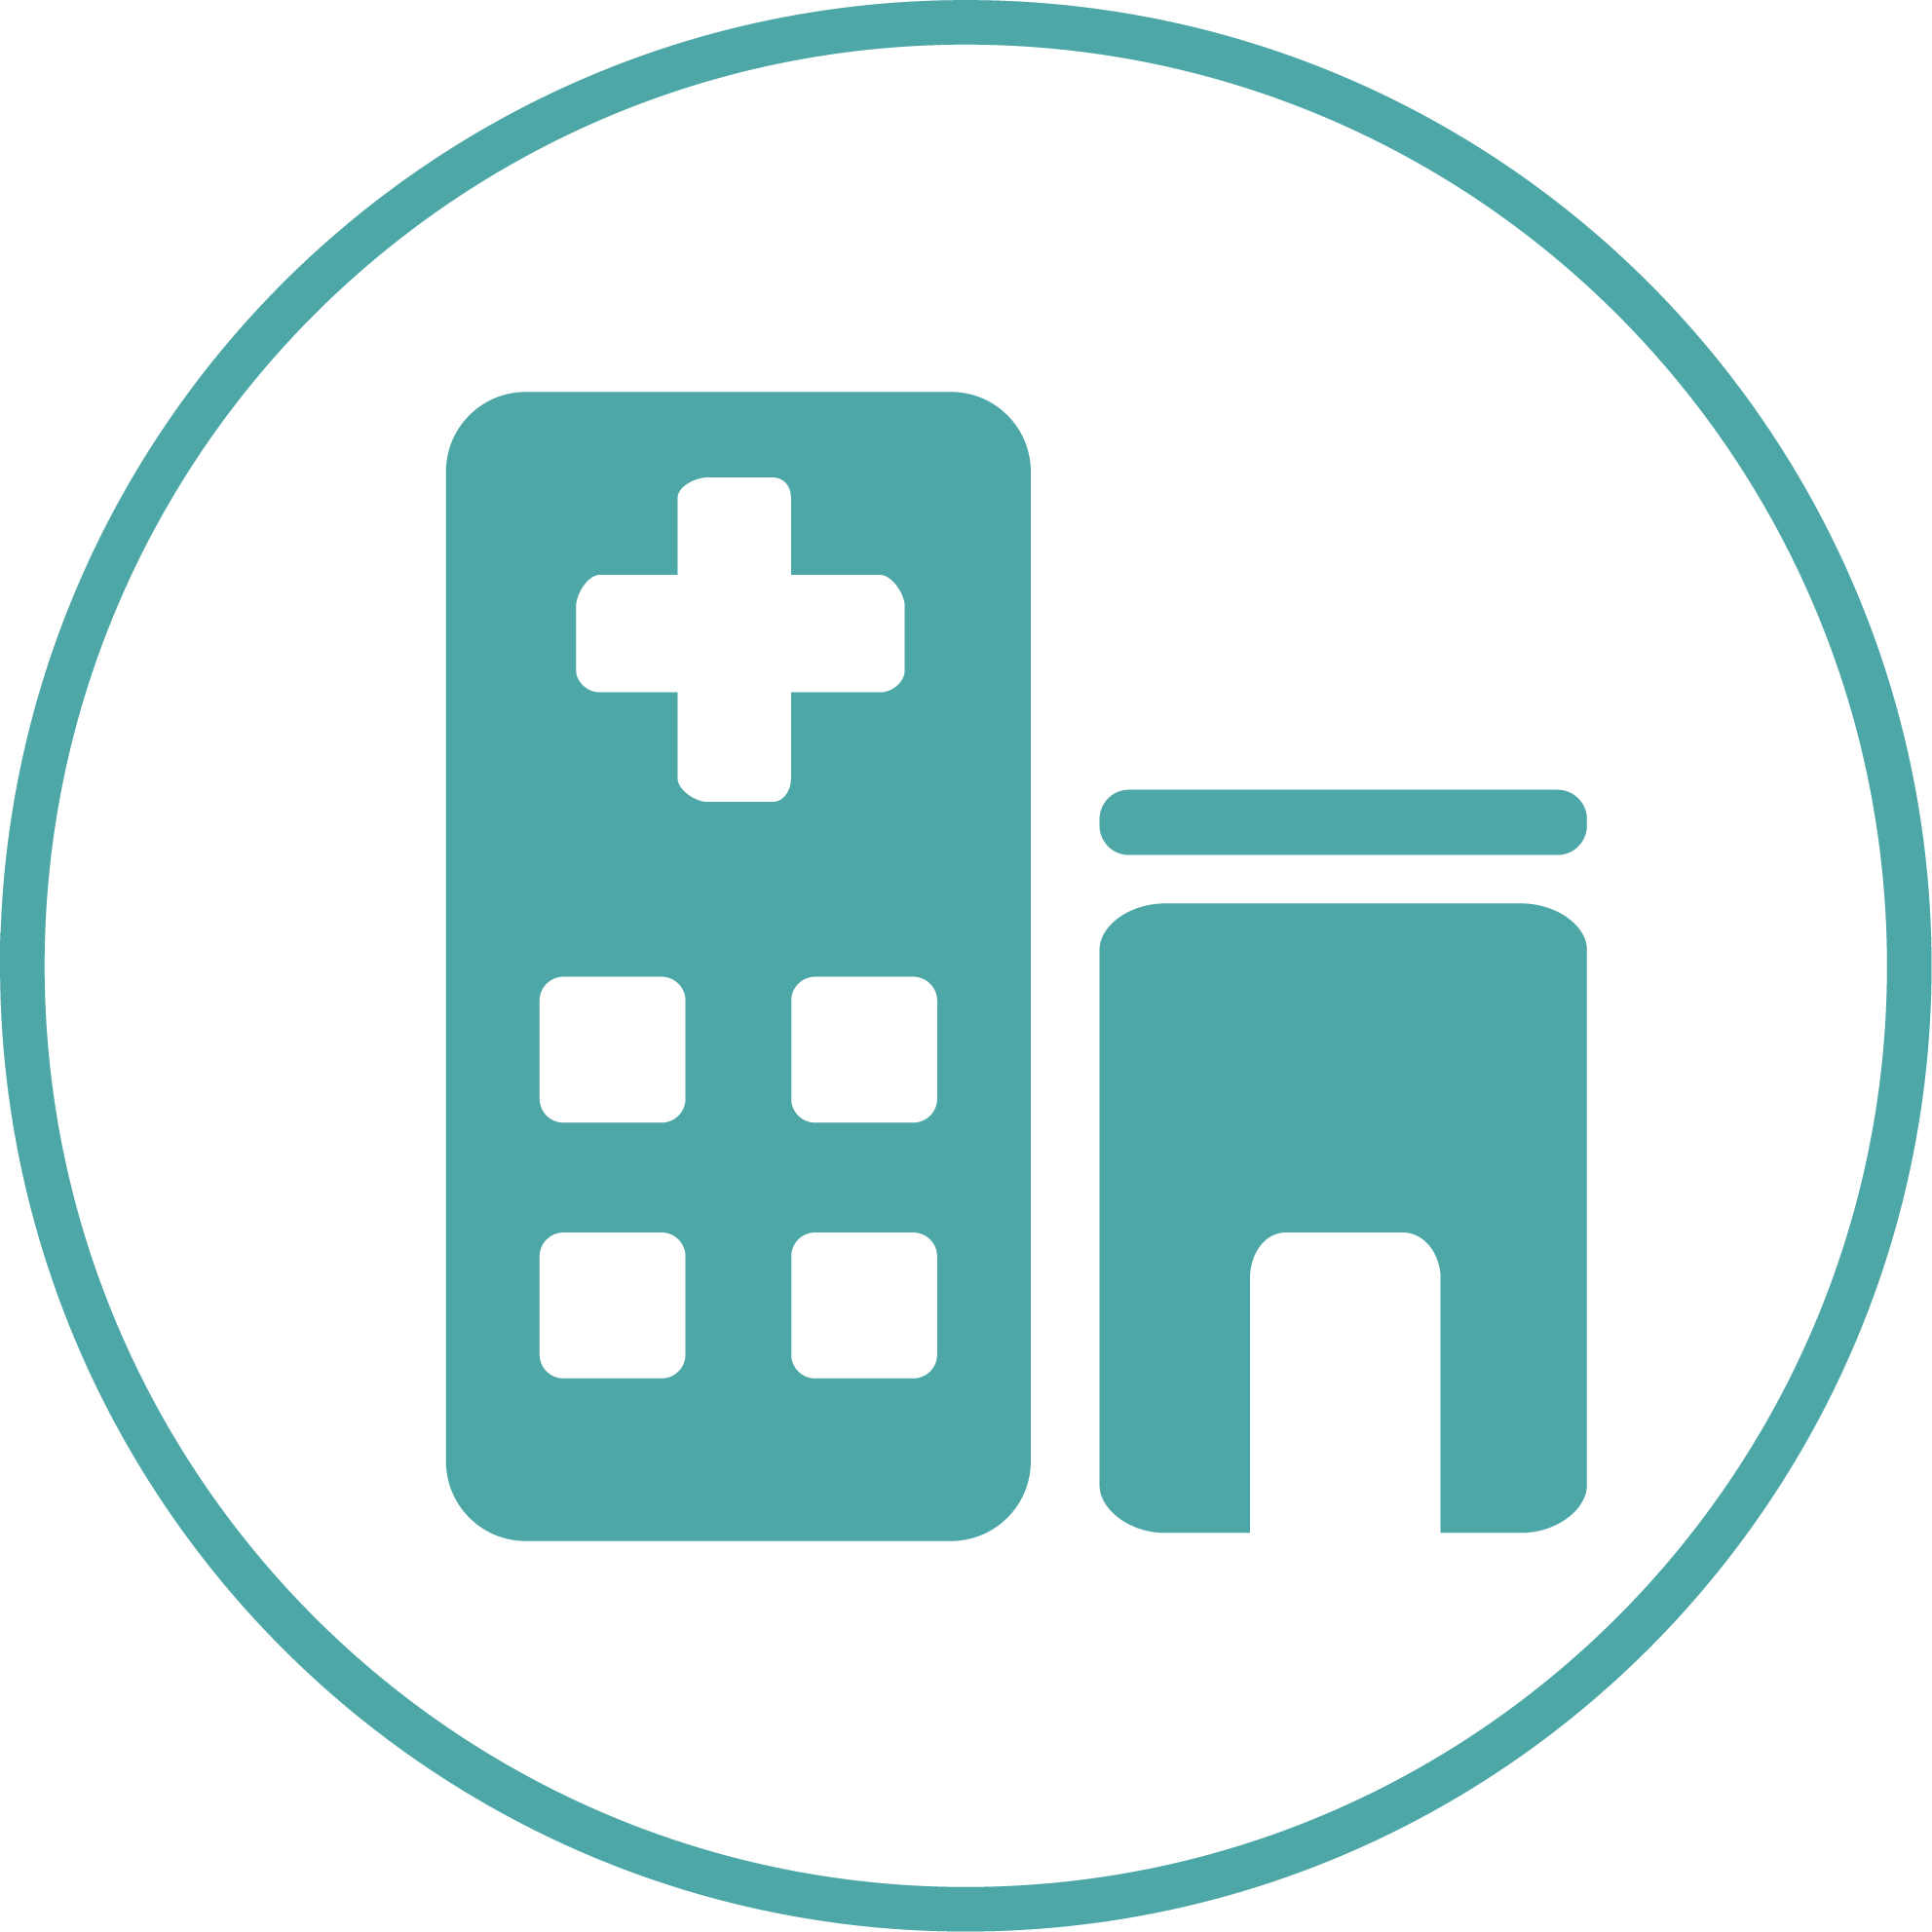 Hospital clipart icon - ClipartFest - Hospital PNG HD Images